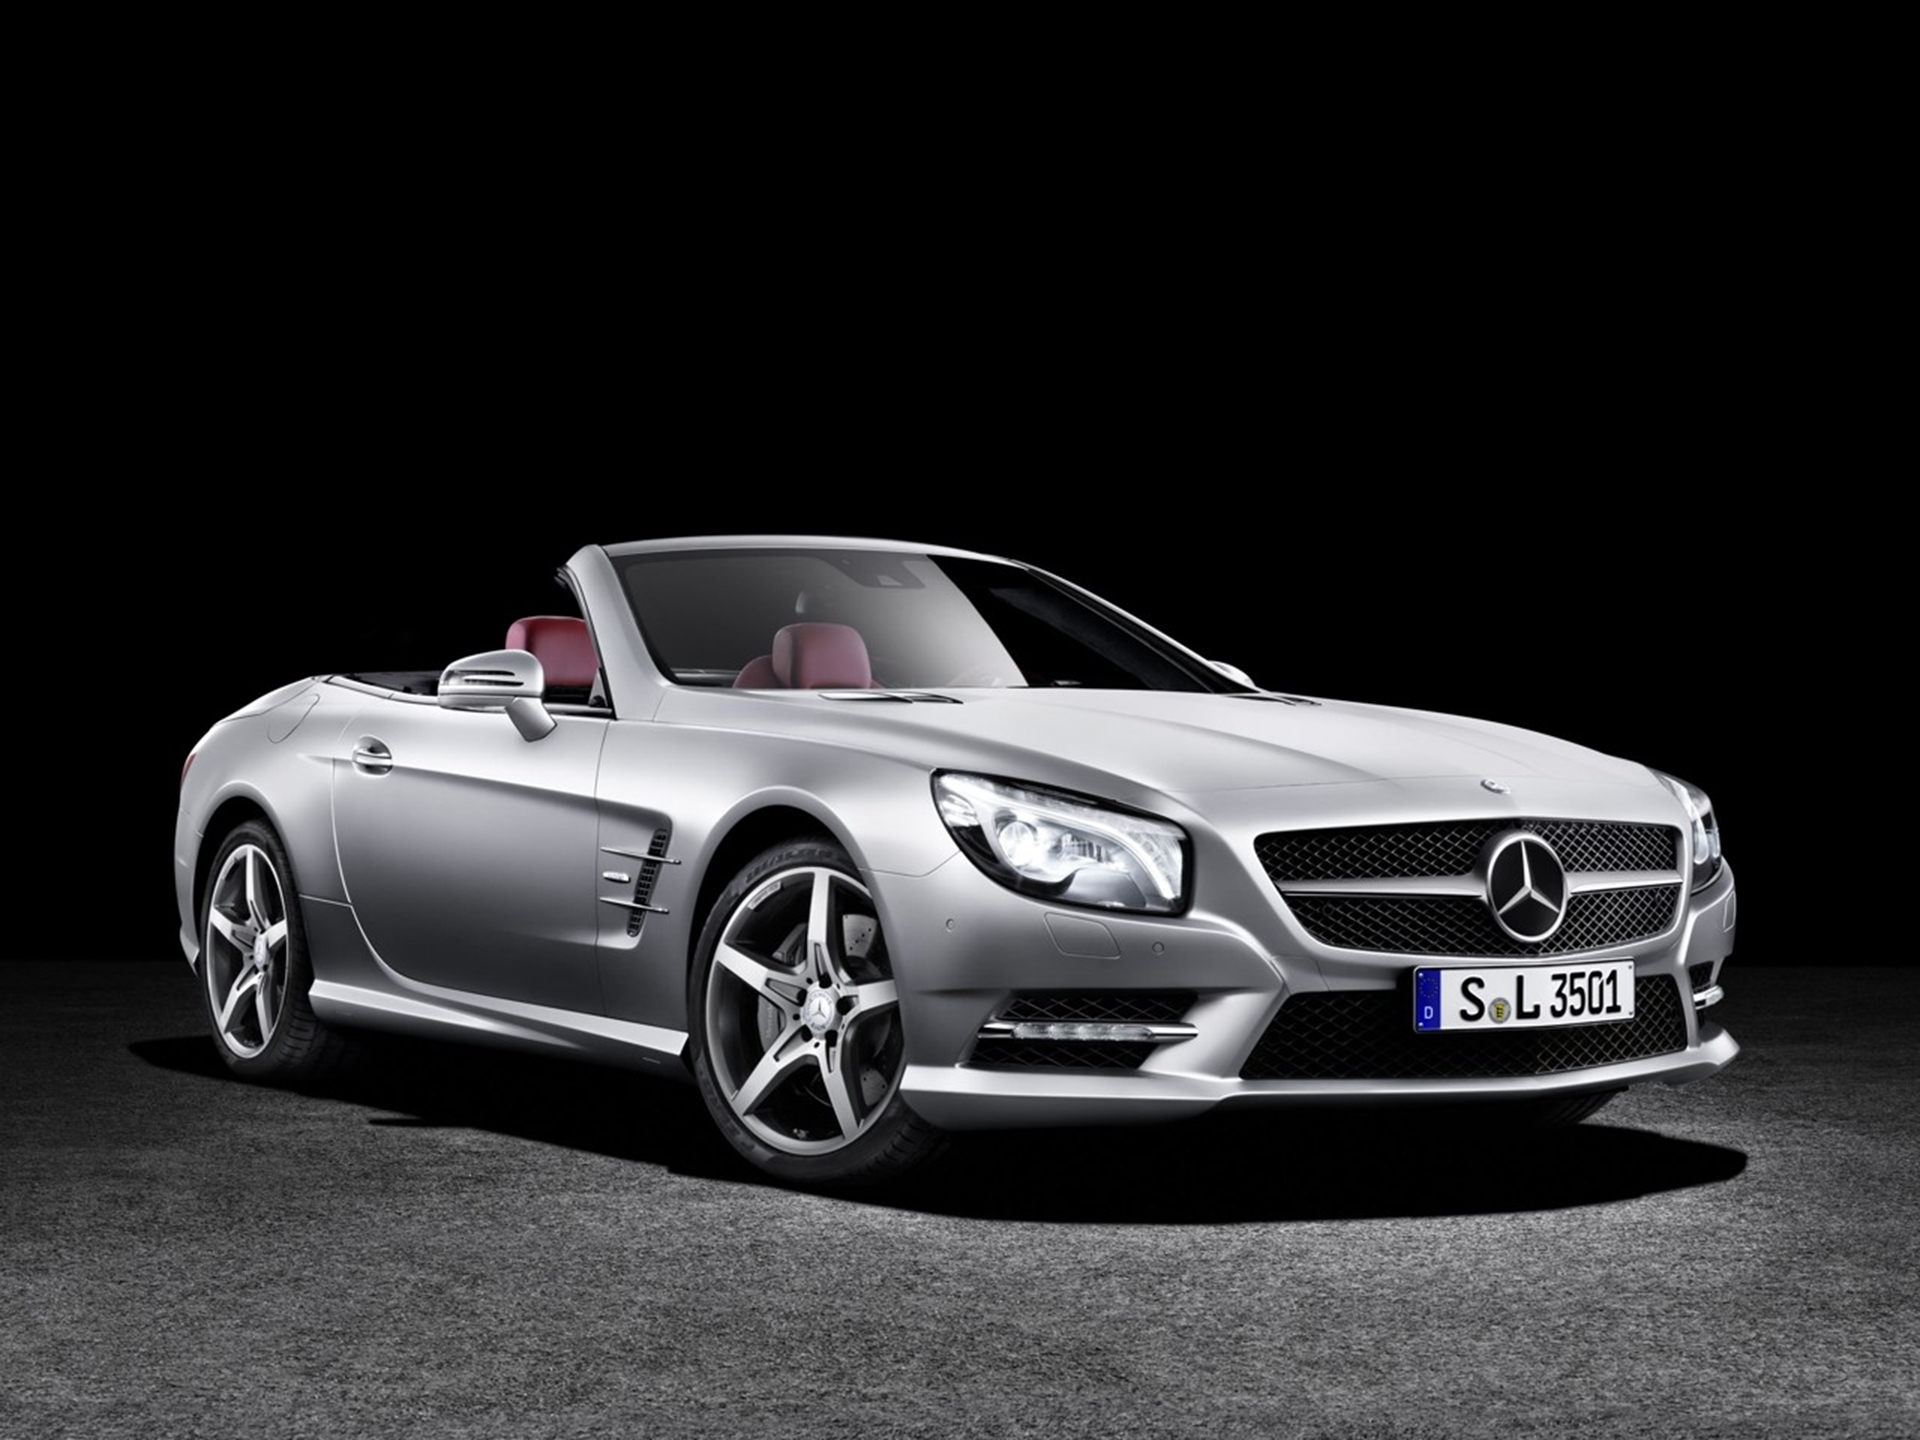 Mercedes-Benz SL 500 New